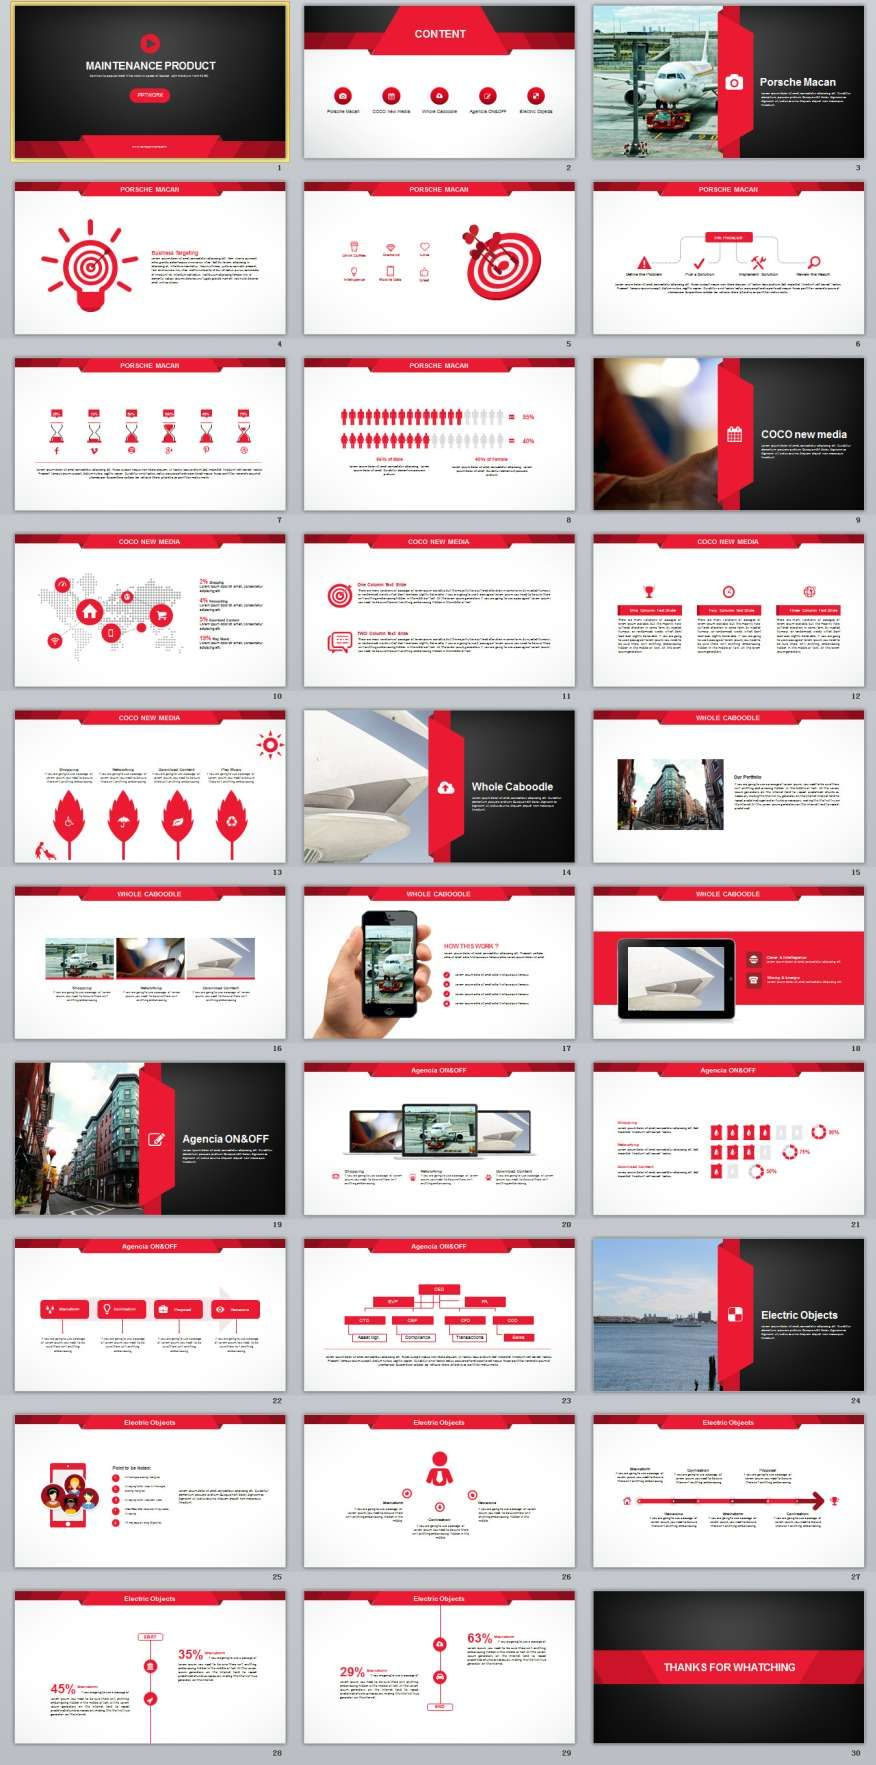 30 red maintenance product powerpoint templates 2018 annual 30 red maintenance product powerpoint templates alramifo Choice Image